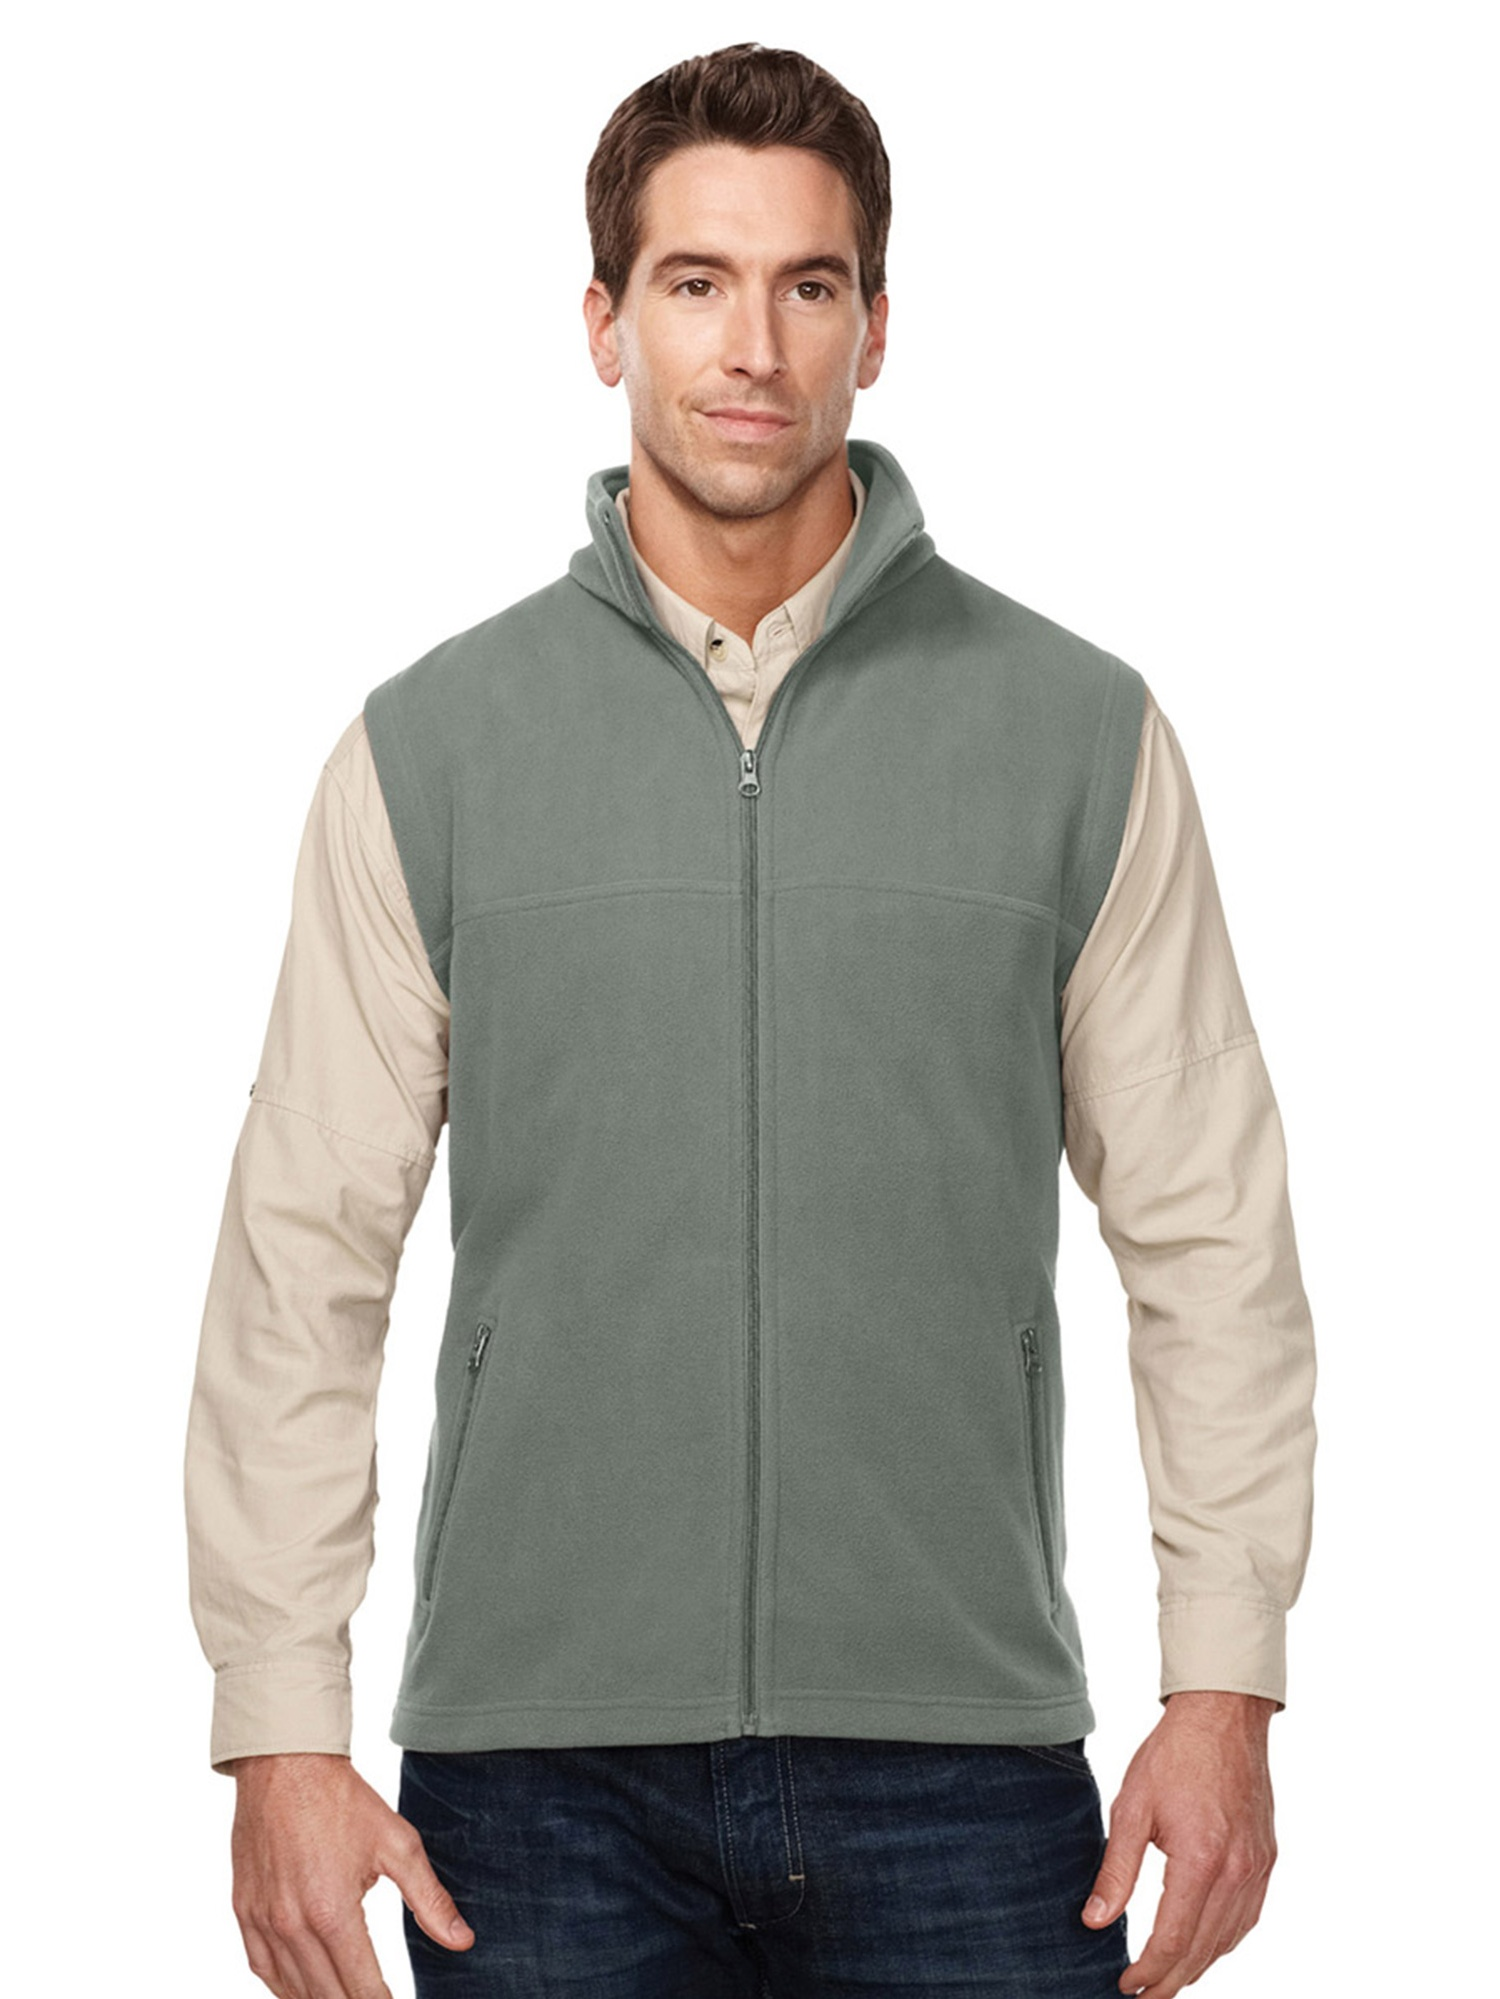 Tri-Mountain Men's Big And Tall Front Pocket Fleece Vest